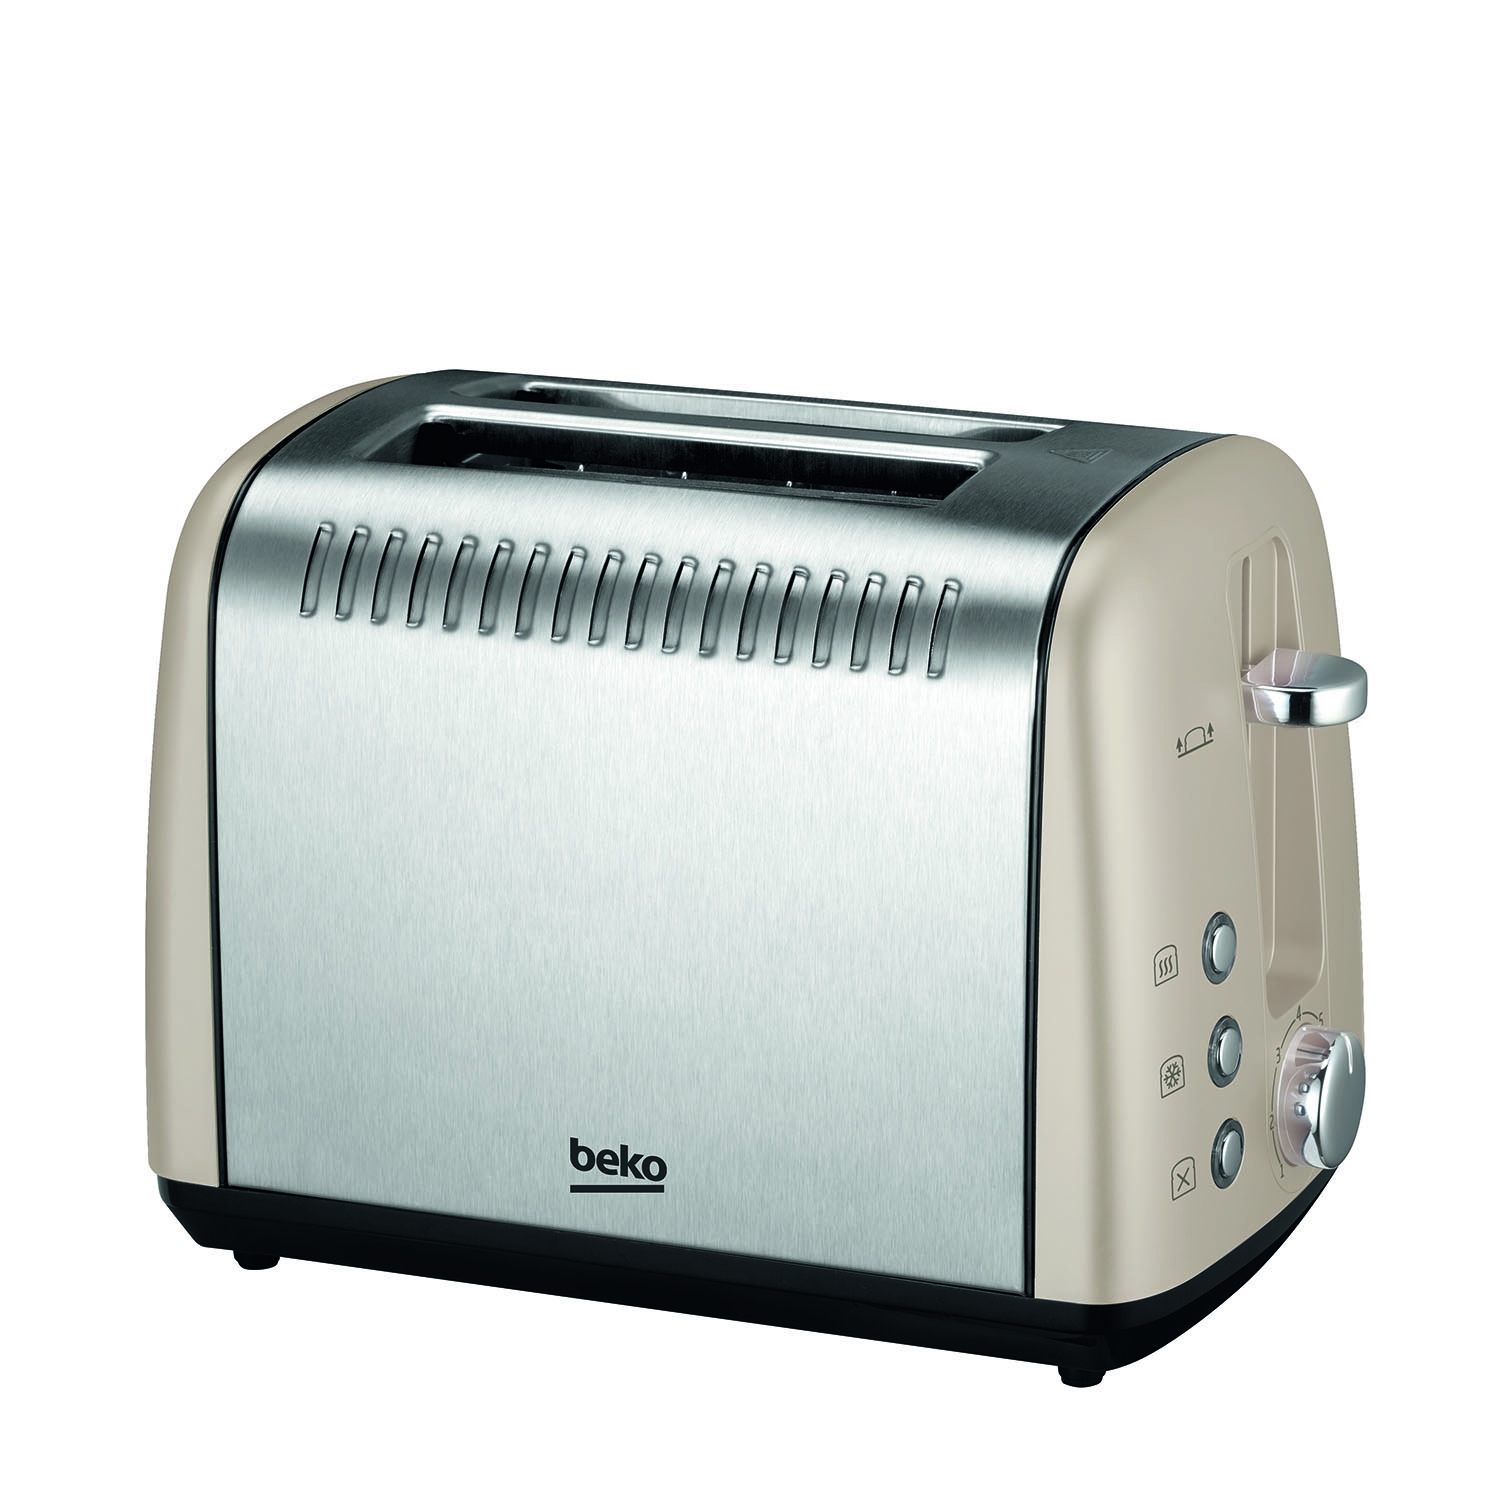 Image of Beko 2 Slice Toaster, Champagne